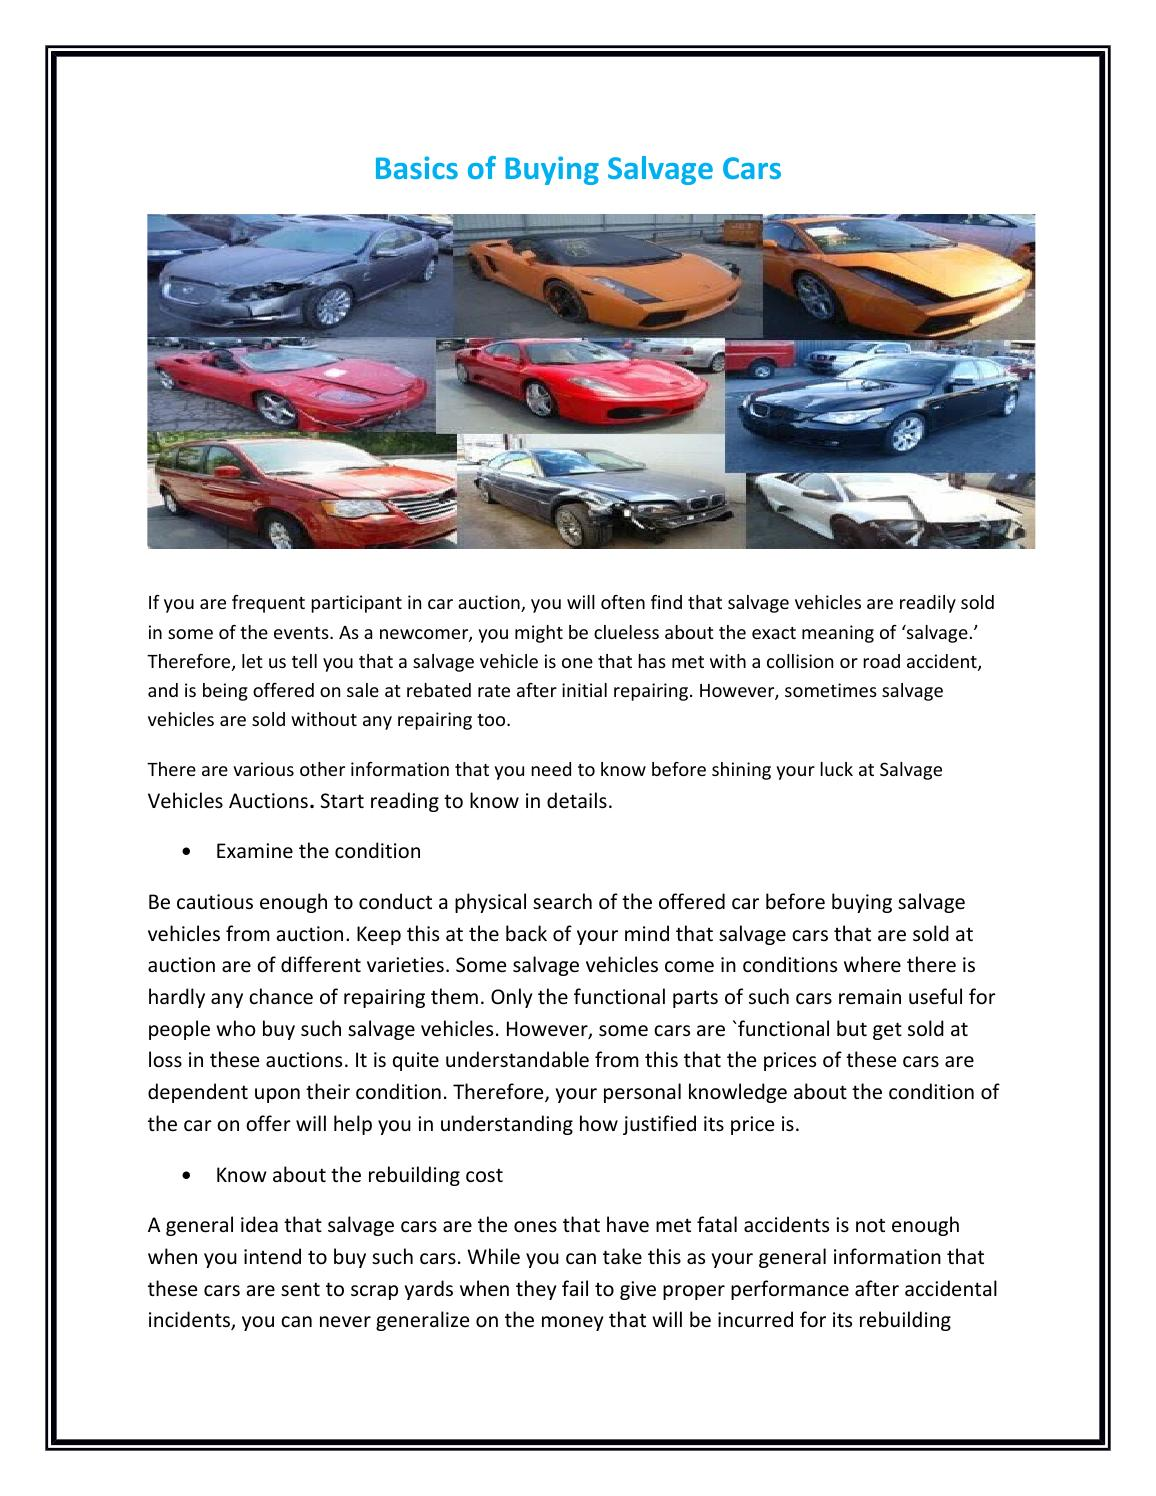 Basics of buying salvage cars by qaauctions - issuu